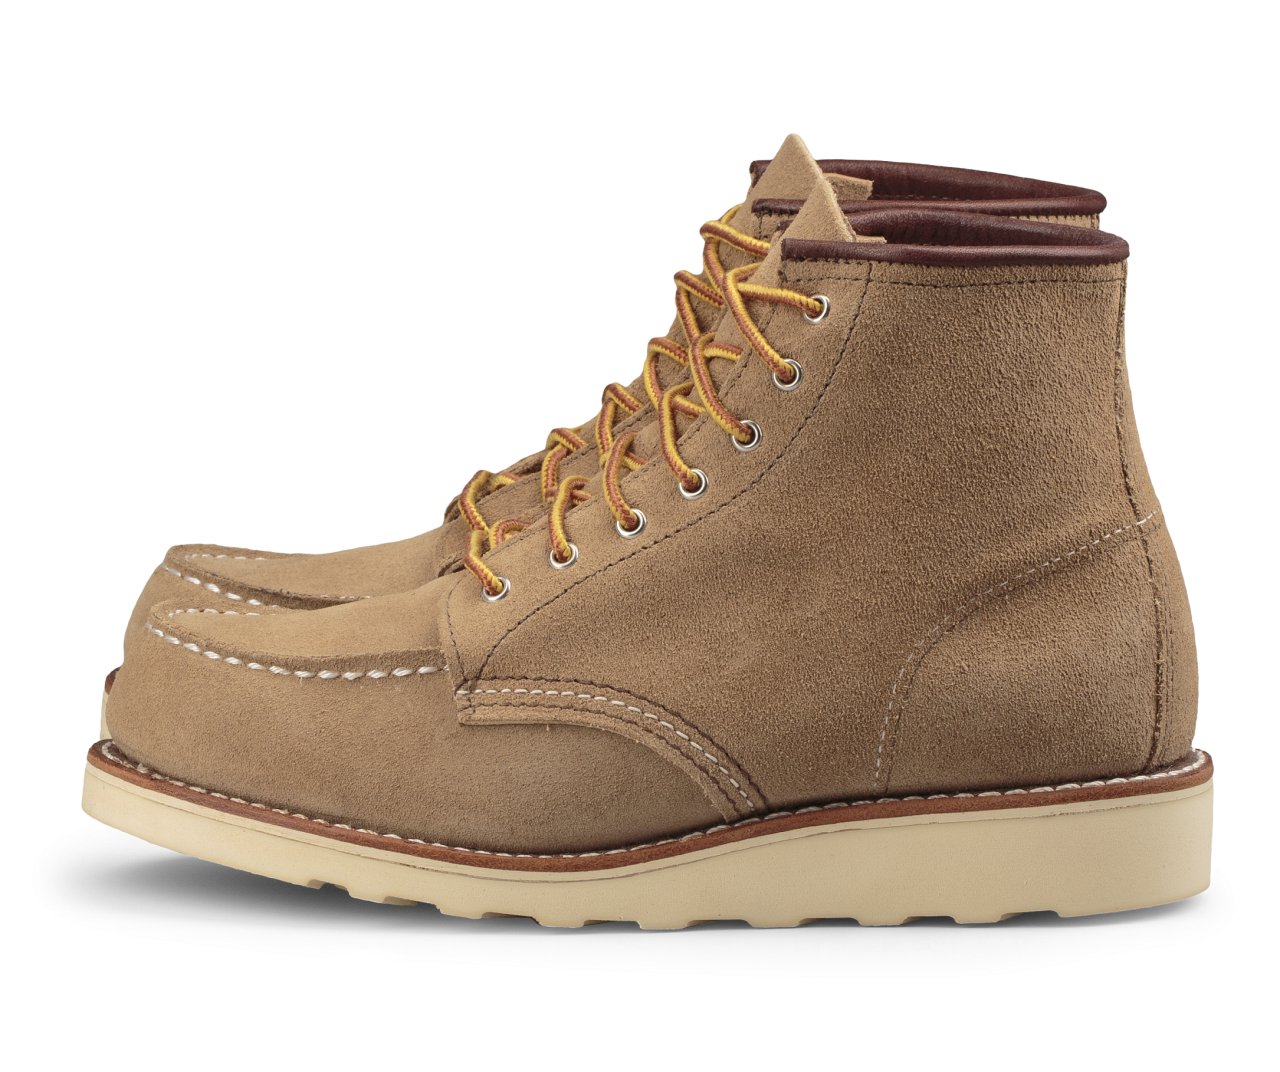 Red Wing 3376 Moc Toe